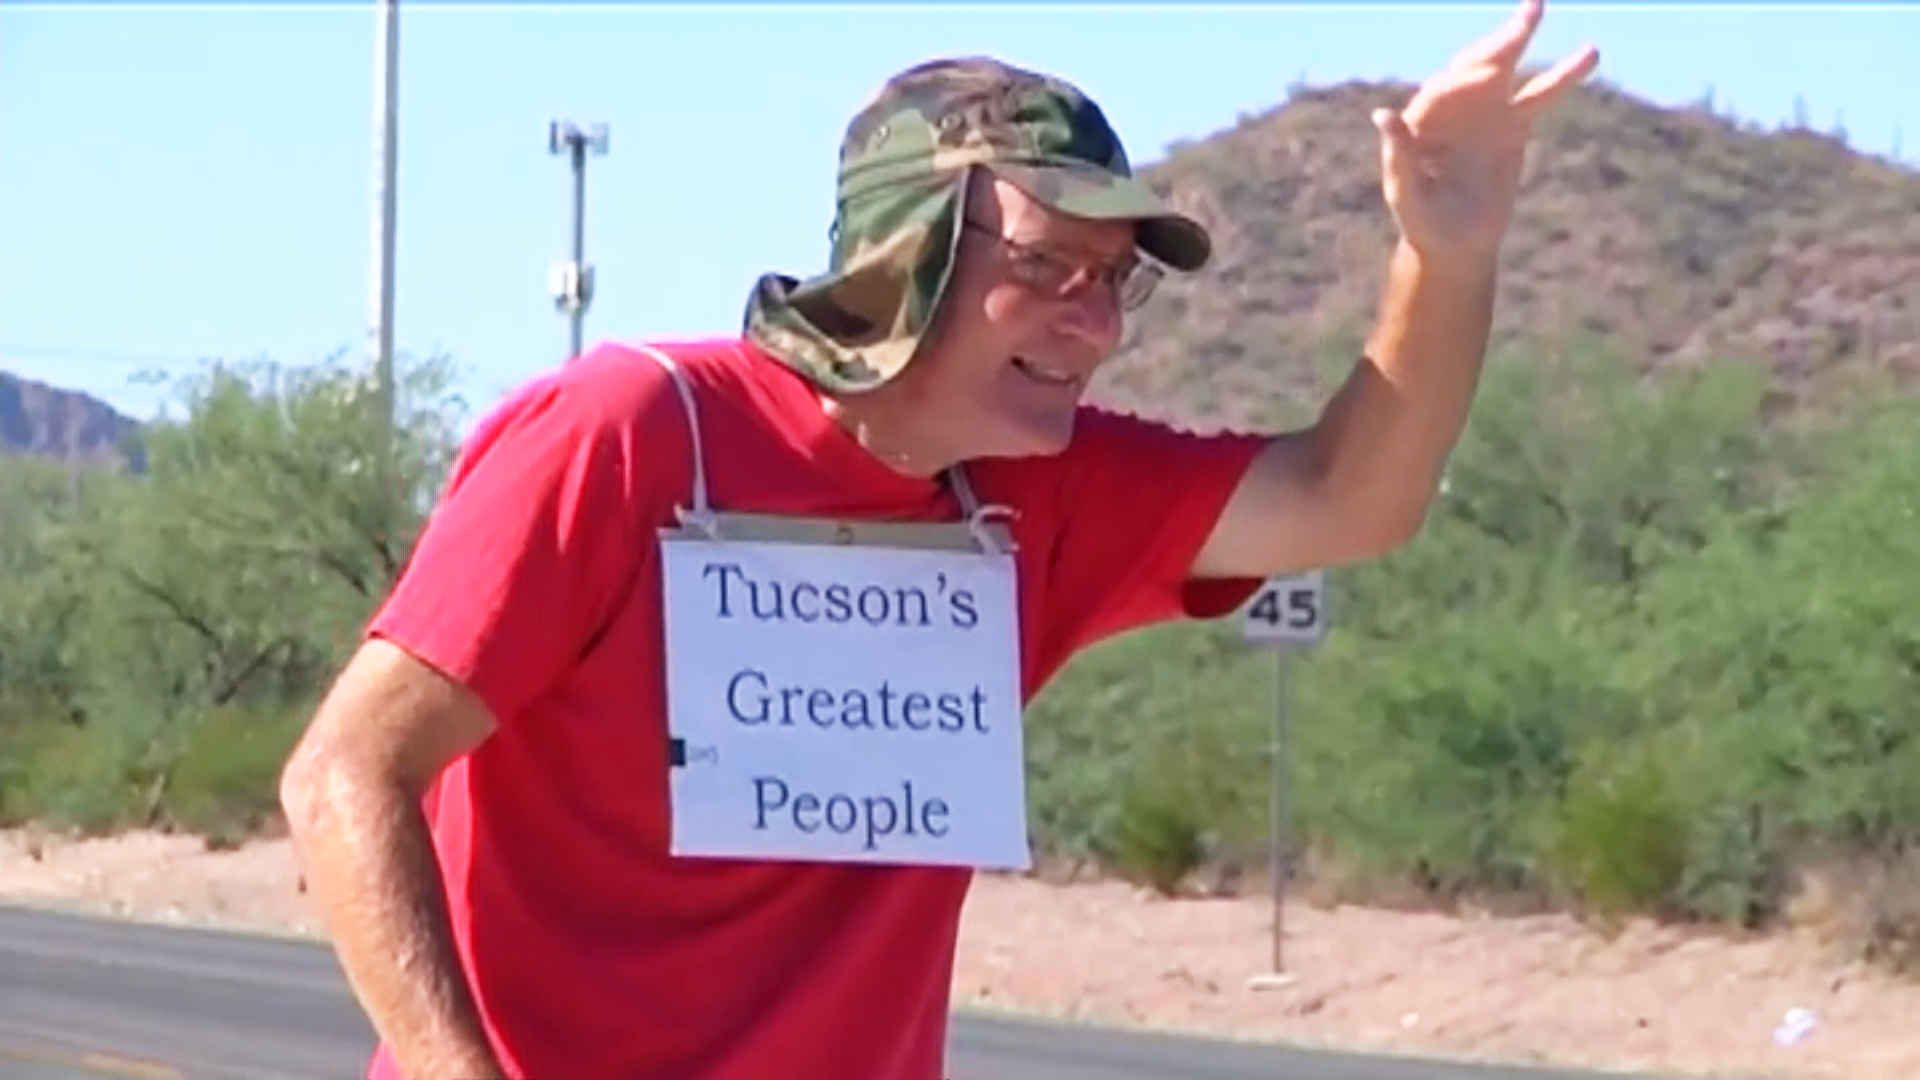 Hi Beams: Arizona Man With Brain Cancer Makes Roadside Smiling His Mission